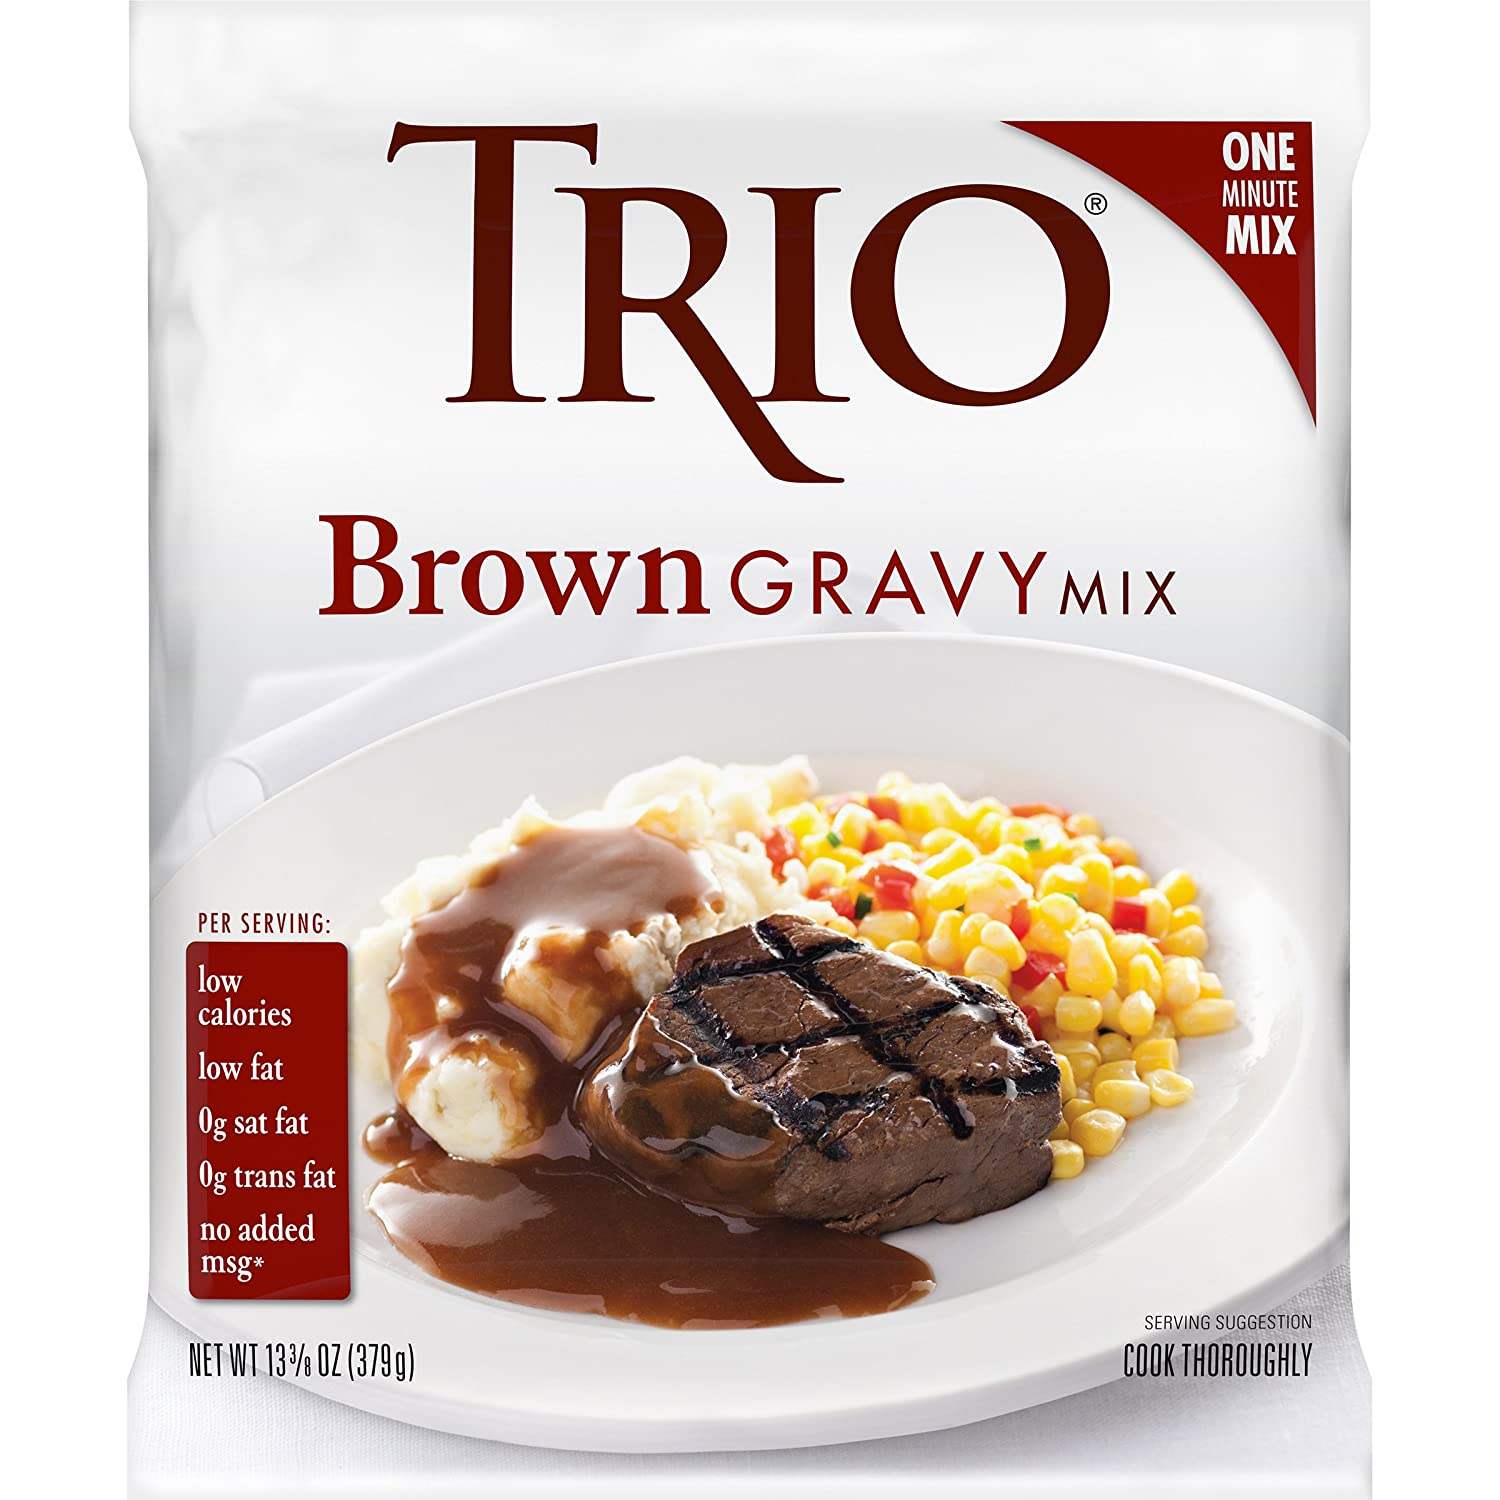 Trio Gravy Mix, Brown Gravy, Holiday Roasts, Dehydrated, Just Add Water, 13.37 oz Bag